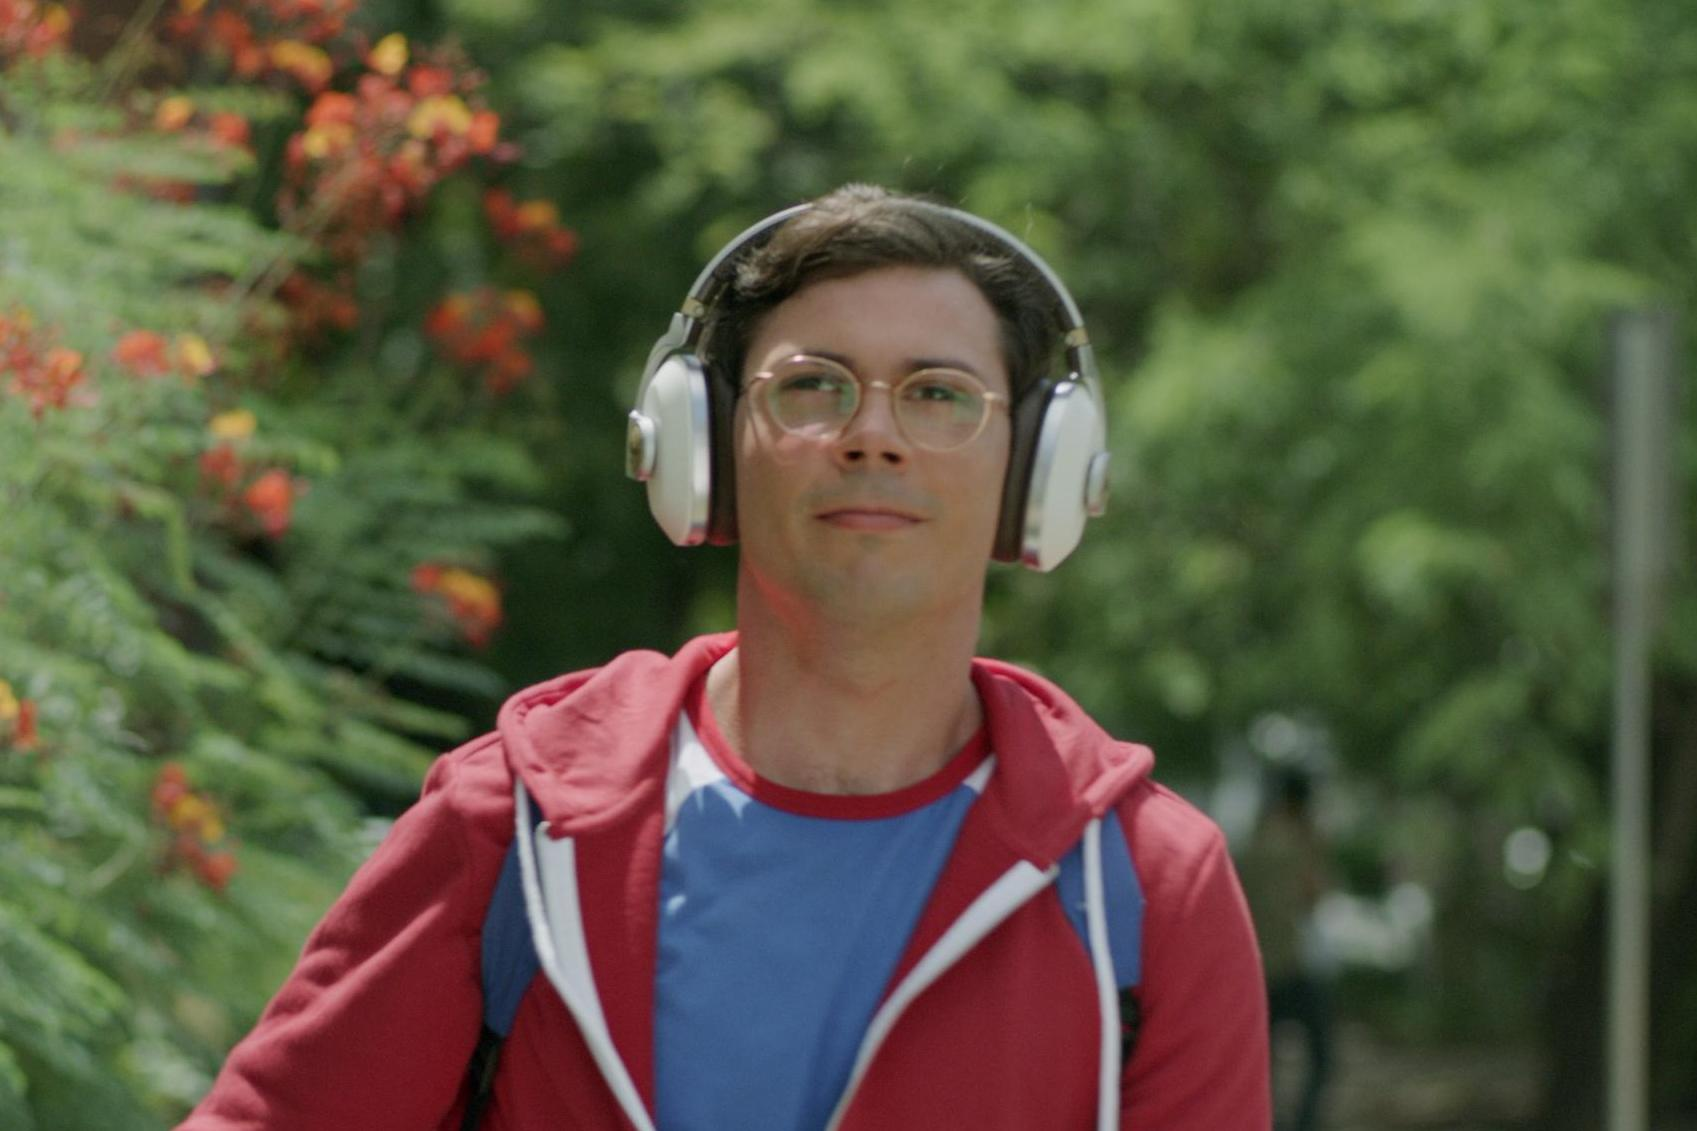 Special trailer: New Netflix series' lead character is gay and has cerebral palsy